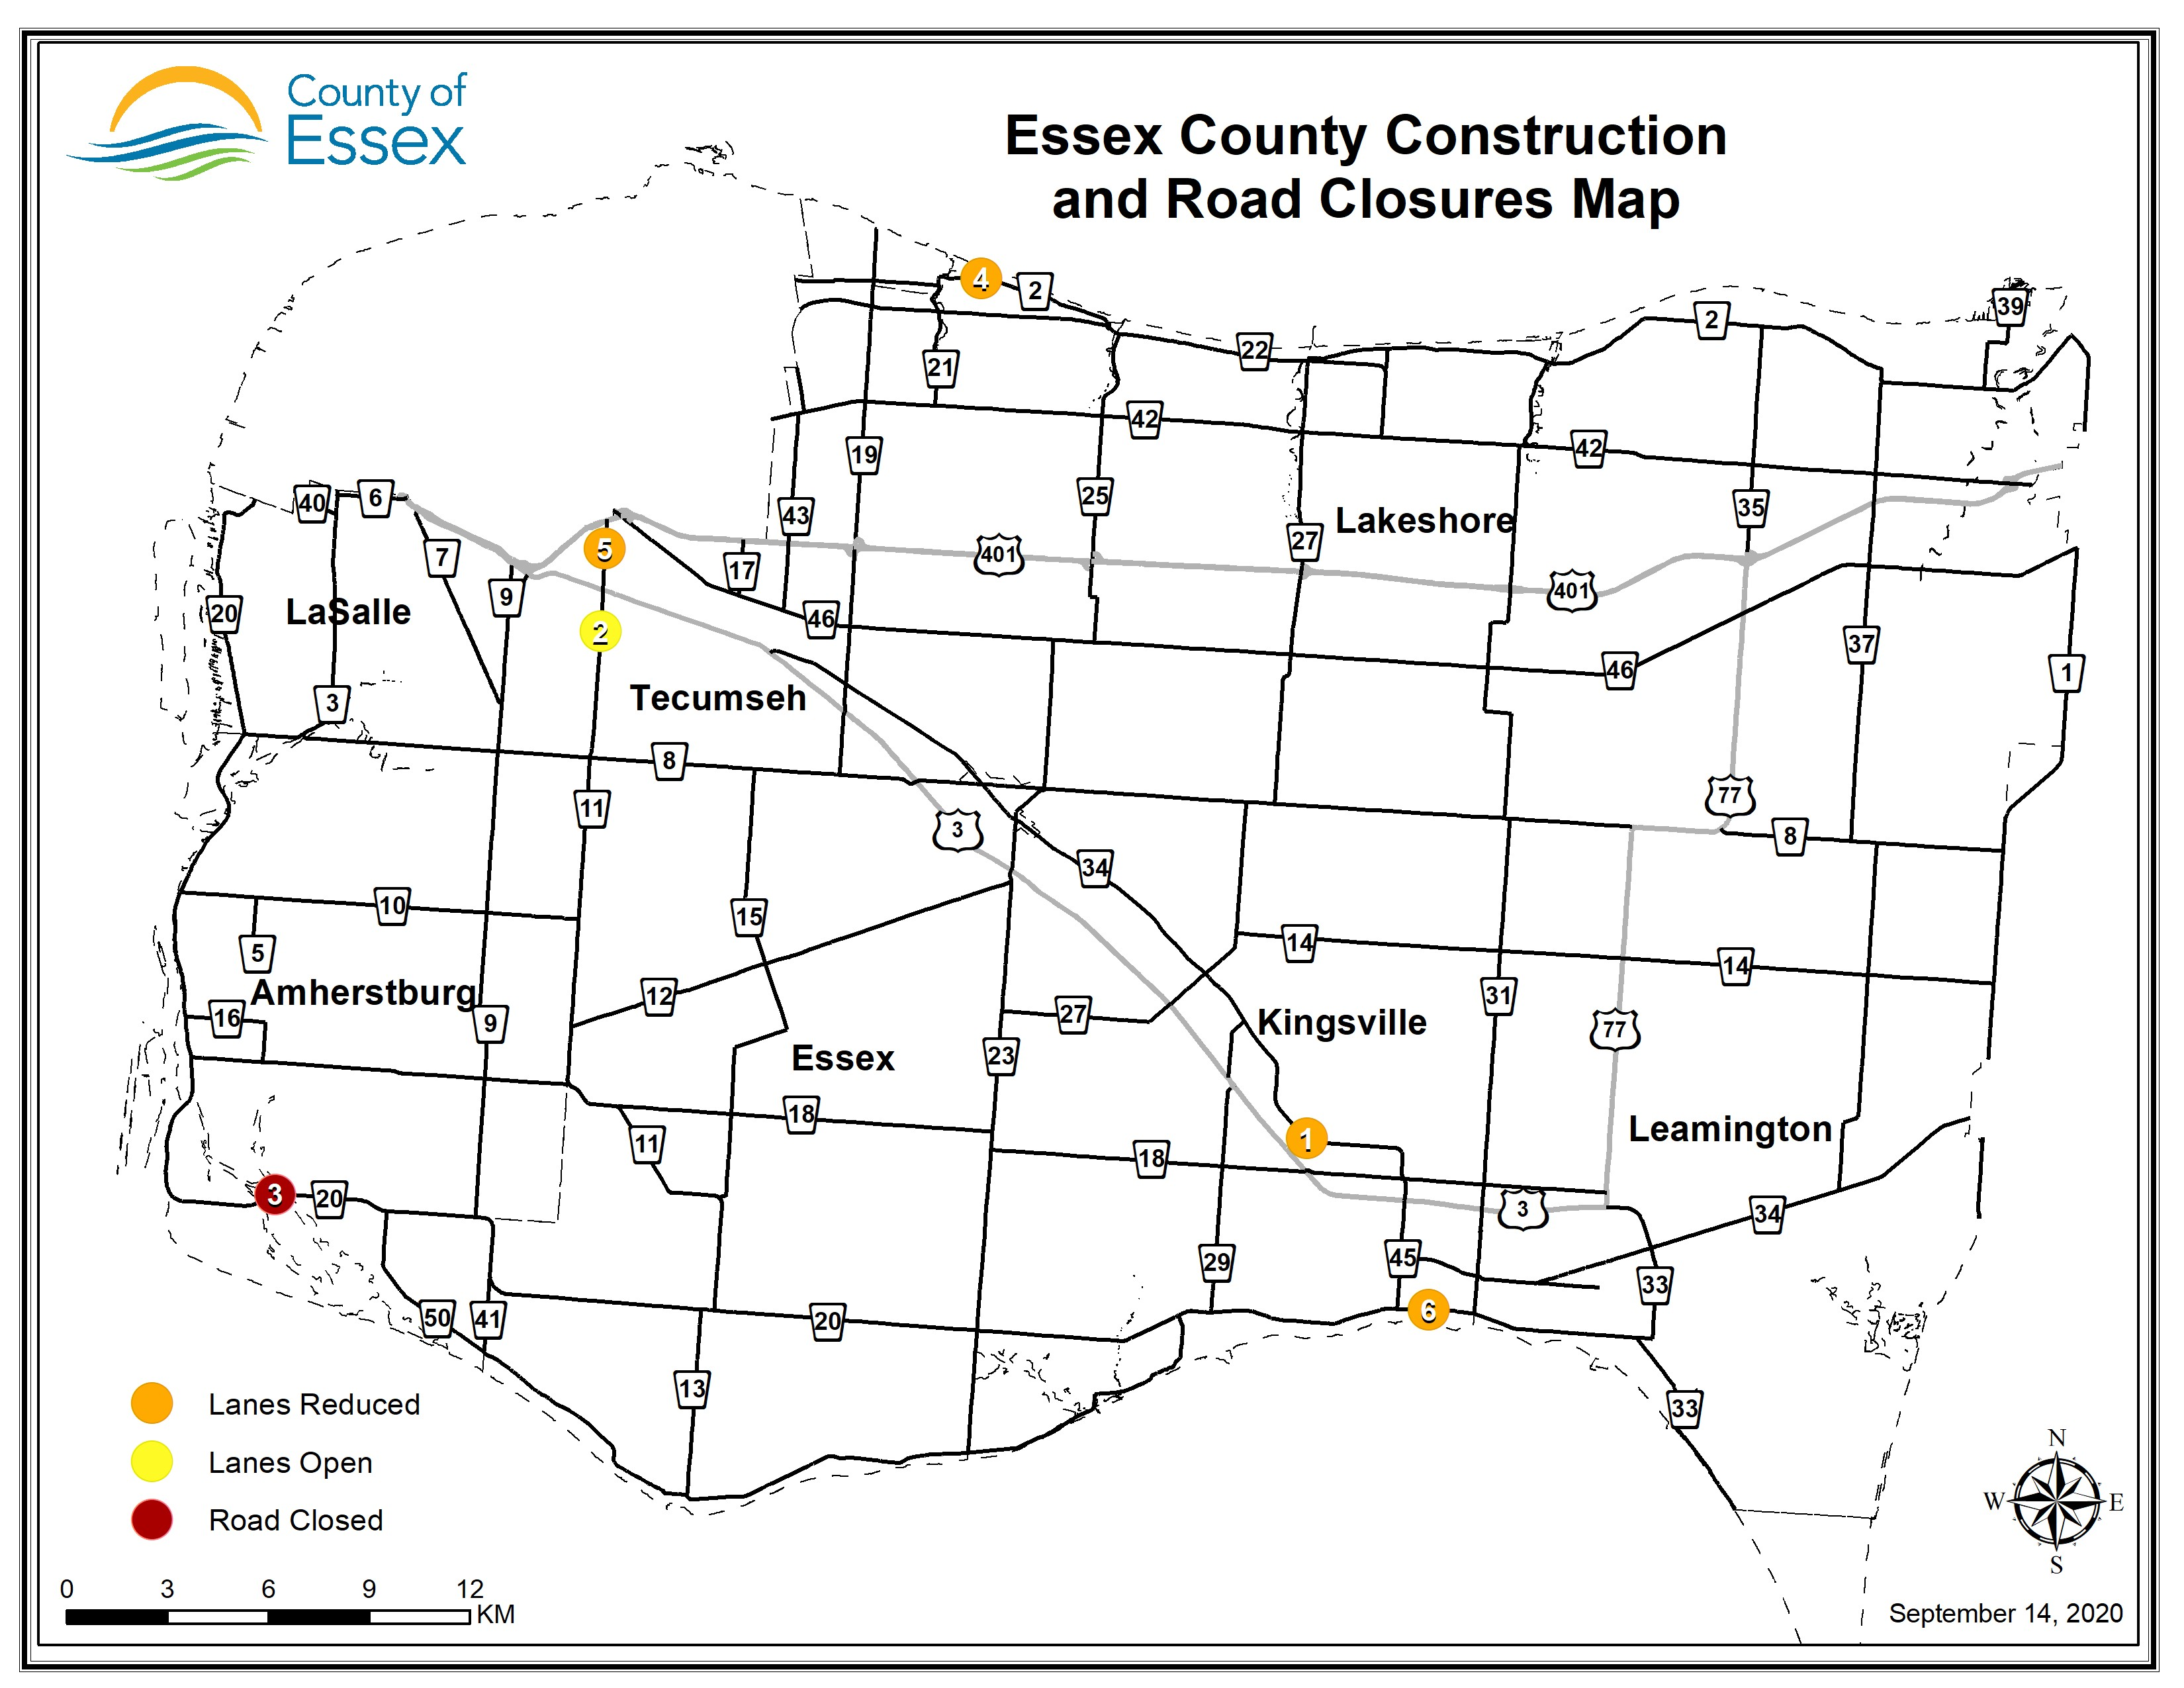 A map of Essex County showing road closures and lane restrictions for September 14, 2020.